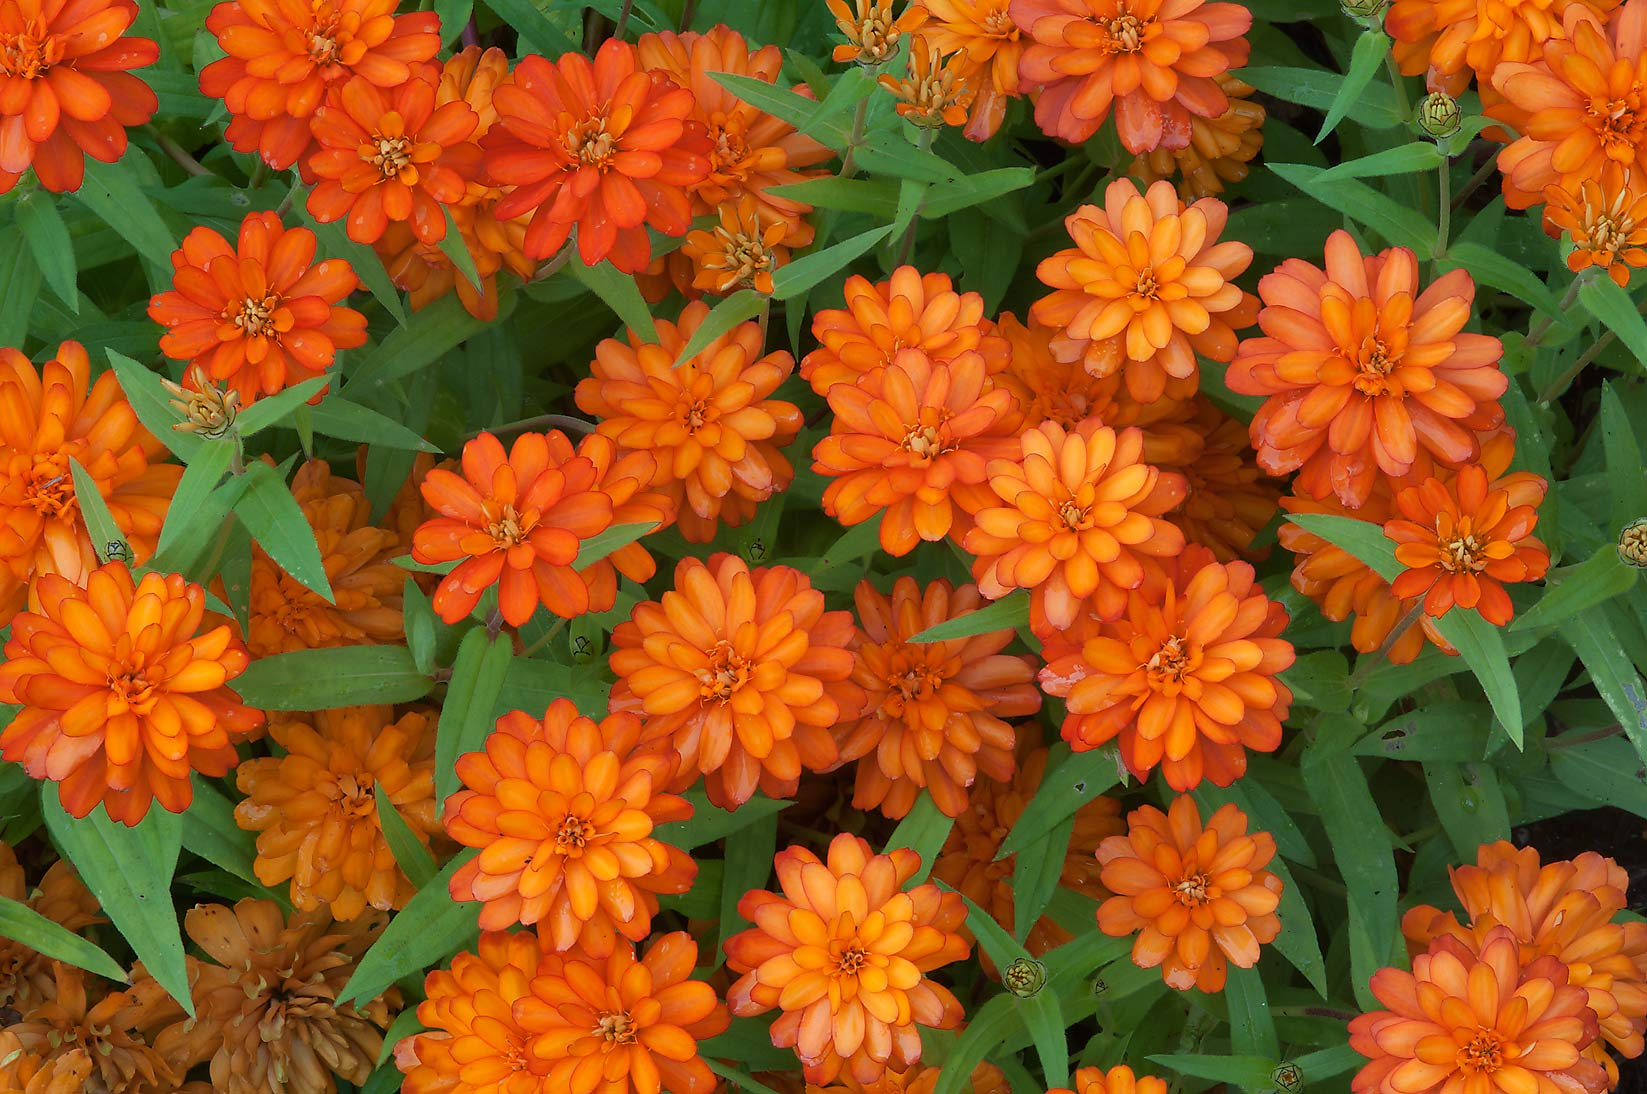 Orange flowers of narrowleaf zinnia (Zinnia...Gardens. Humble (Houston area), Texas